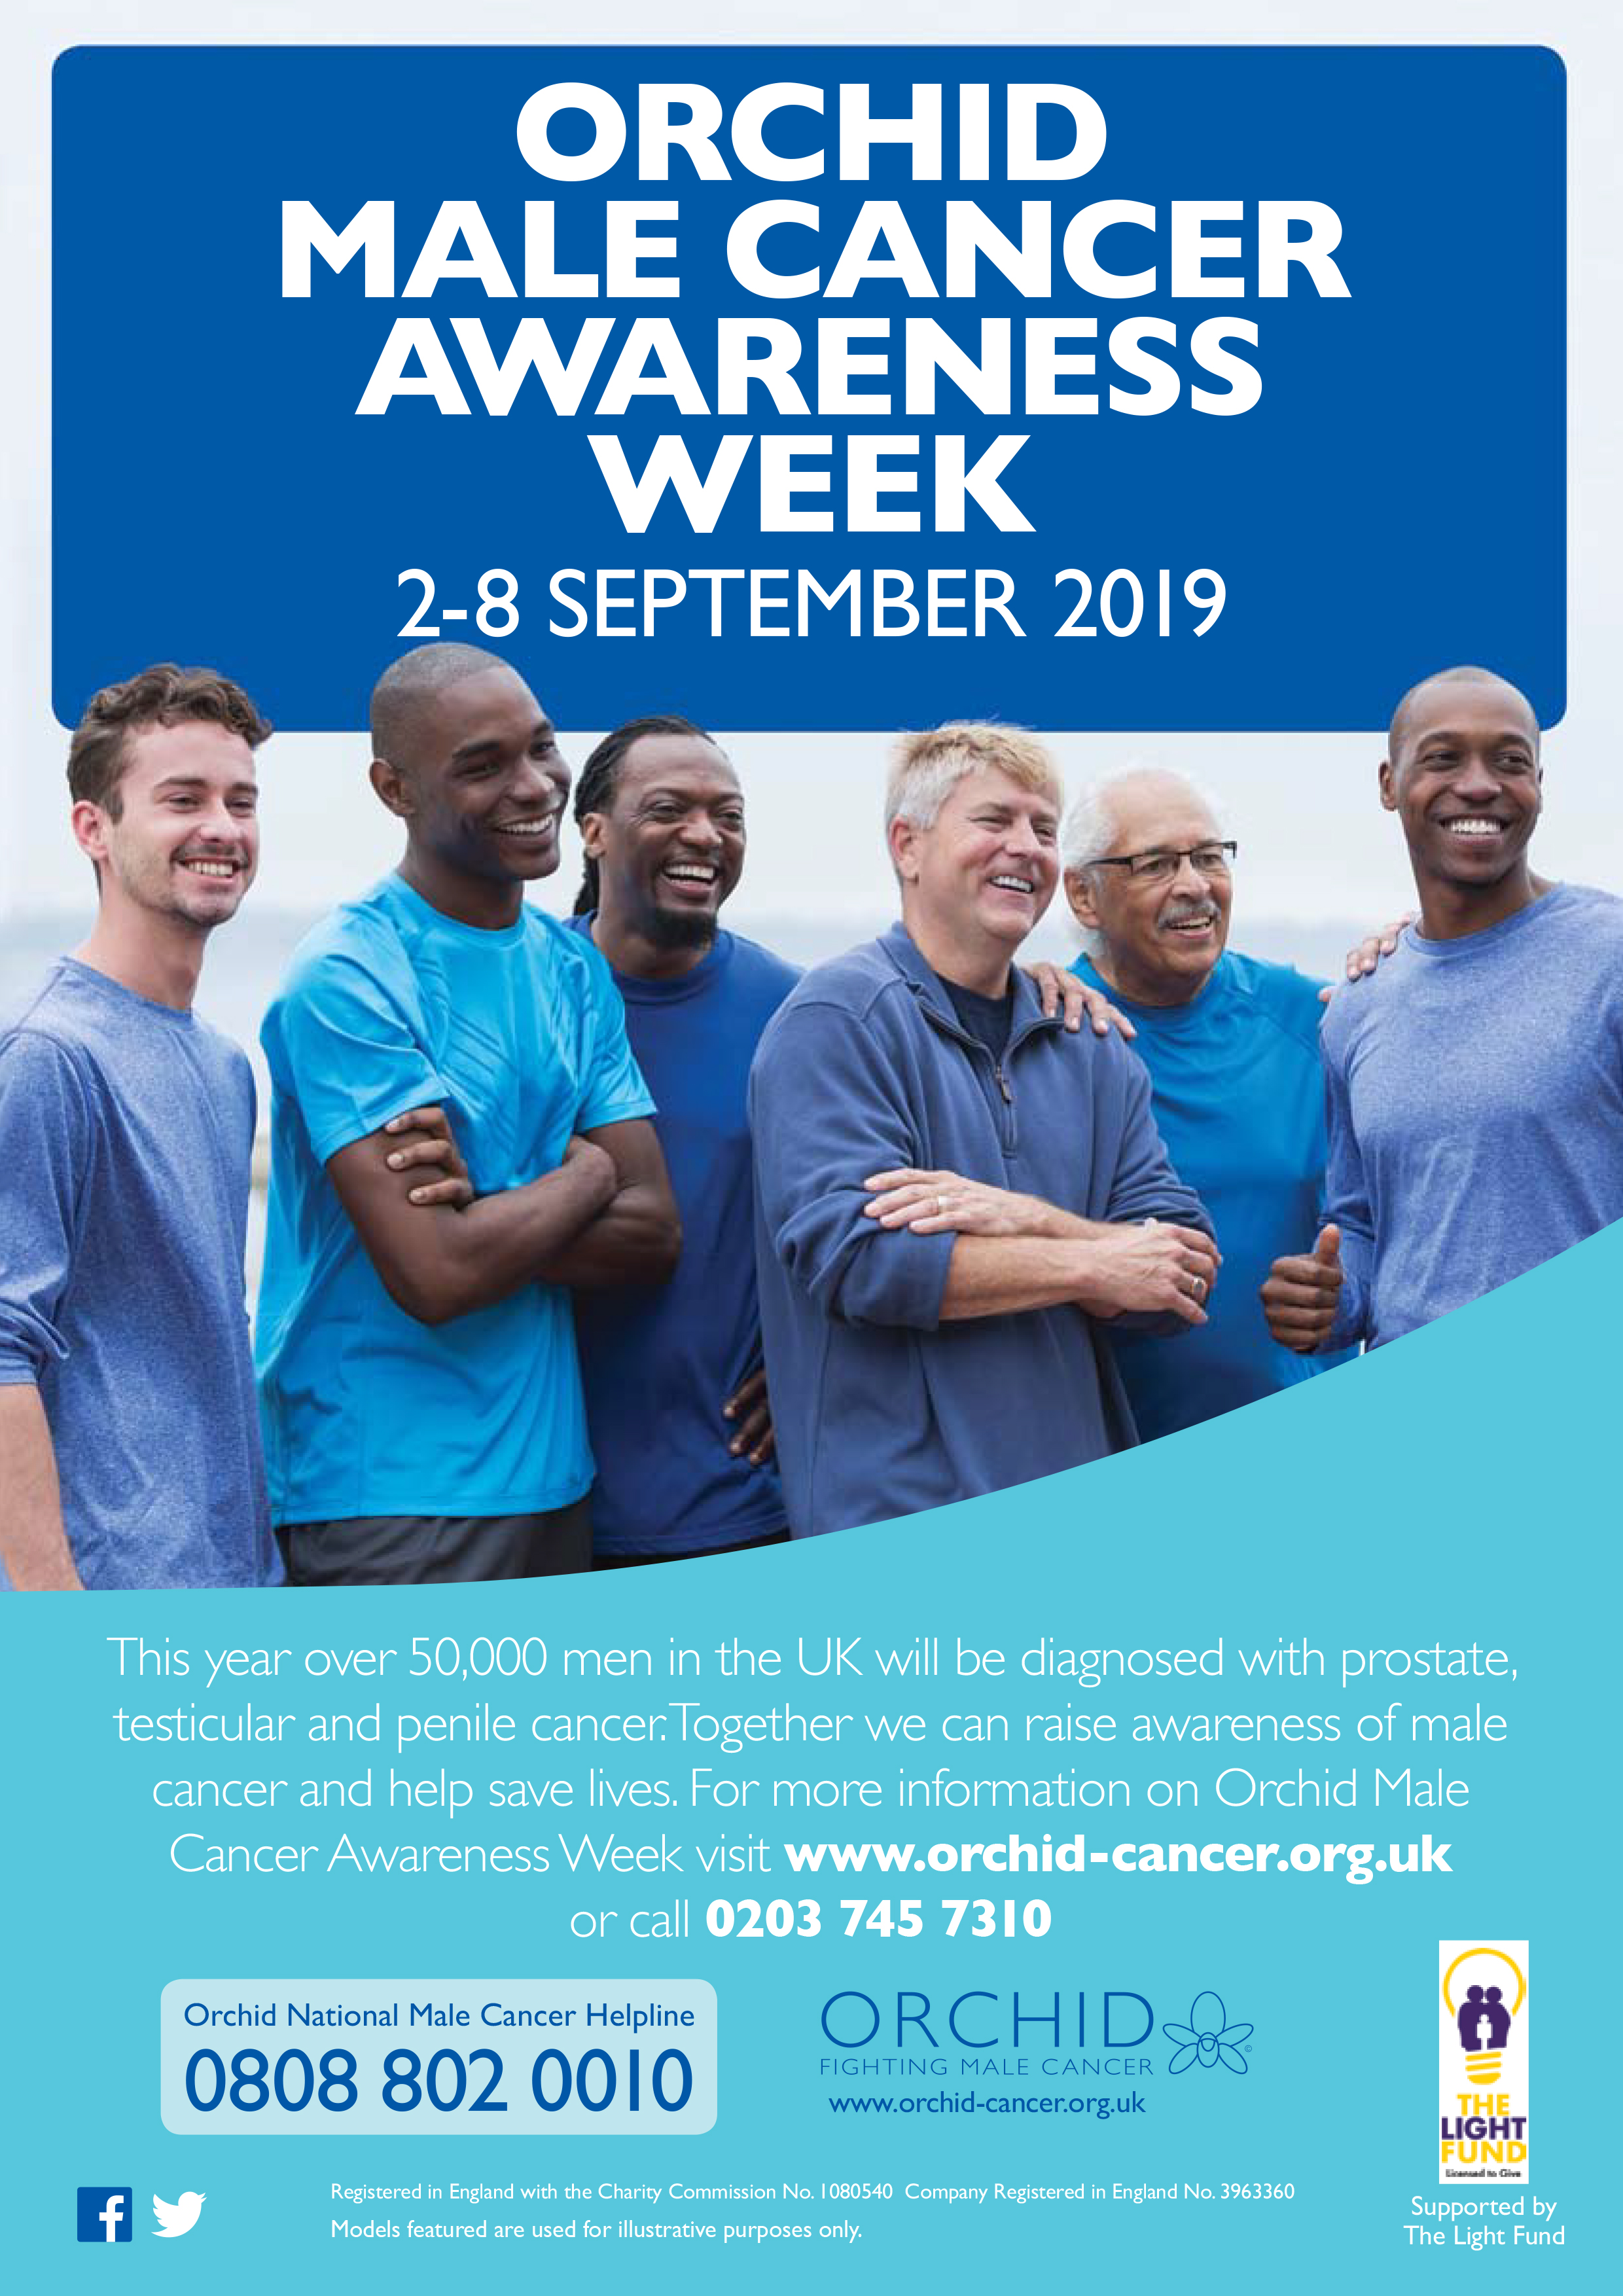 Above: Another of The Light Fund projects this year was to fund Orchid's Male Cancer Awareness Week through the provision of posters and events.